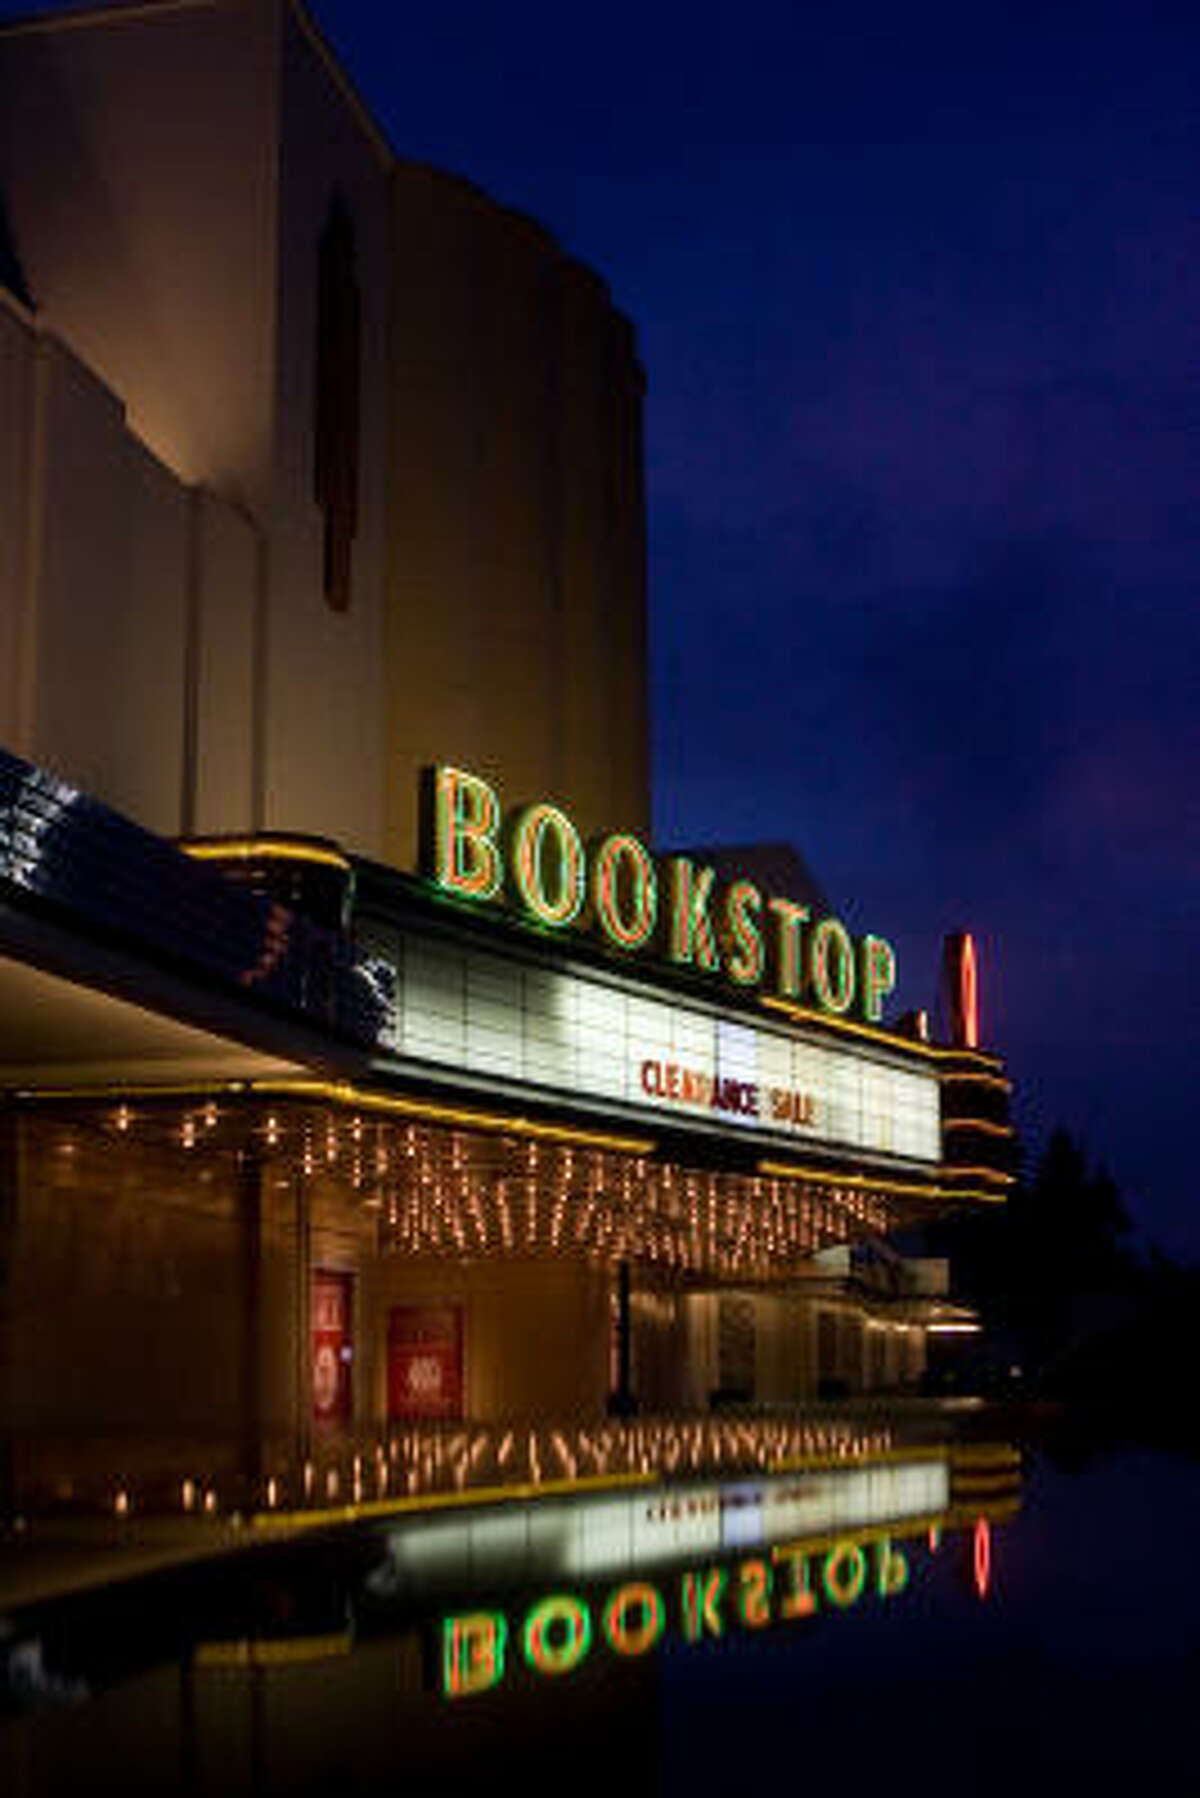 The Alabama Theatre Bookstop, at 2922 S. Shepherd, is set to close on Sept. 15. A new Barnes & Noble location will open on West Gray on Sept. 16.